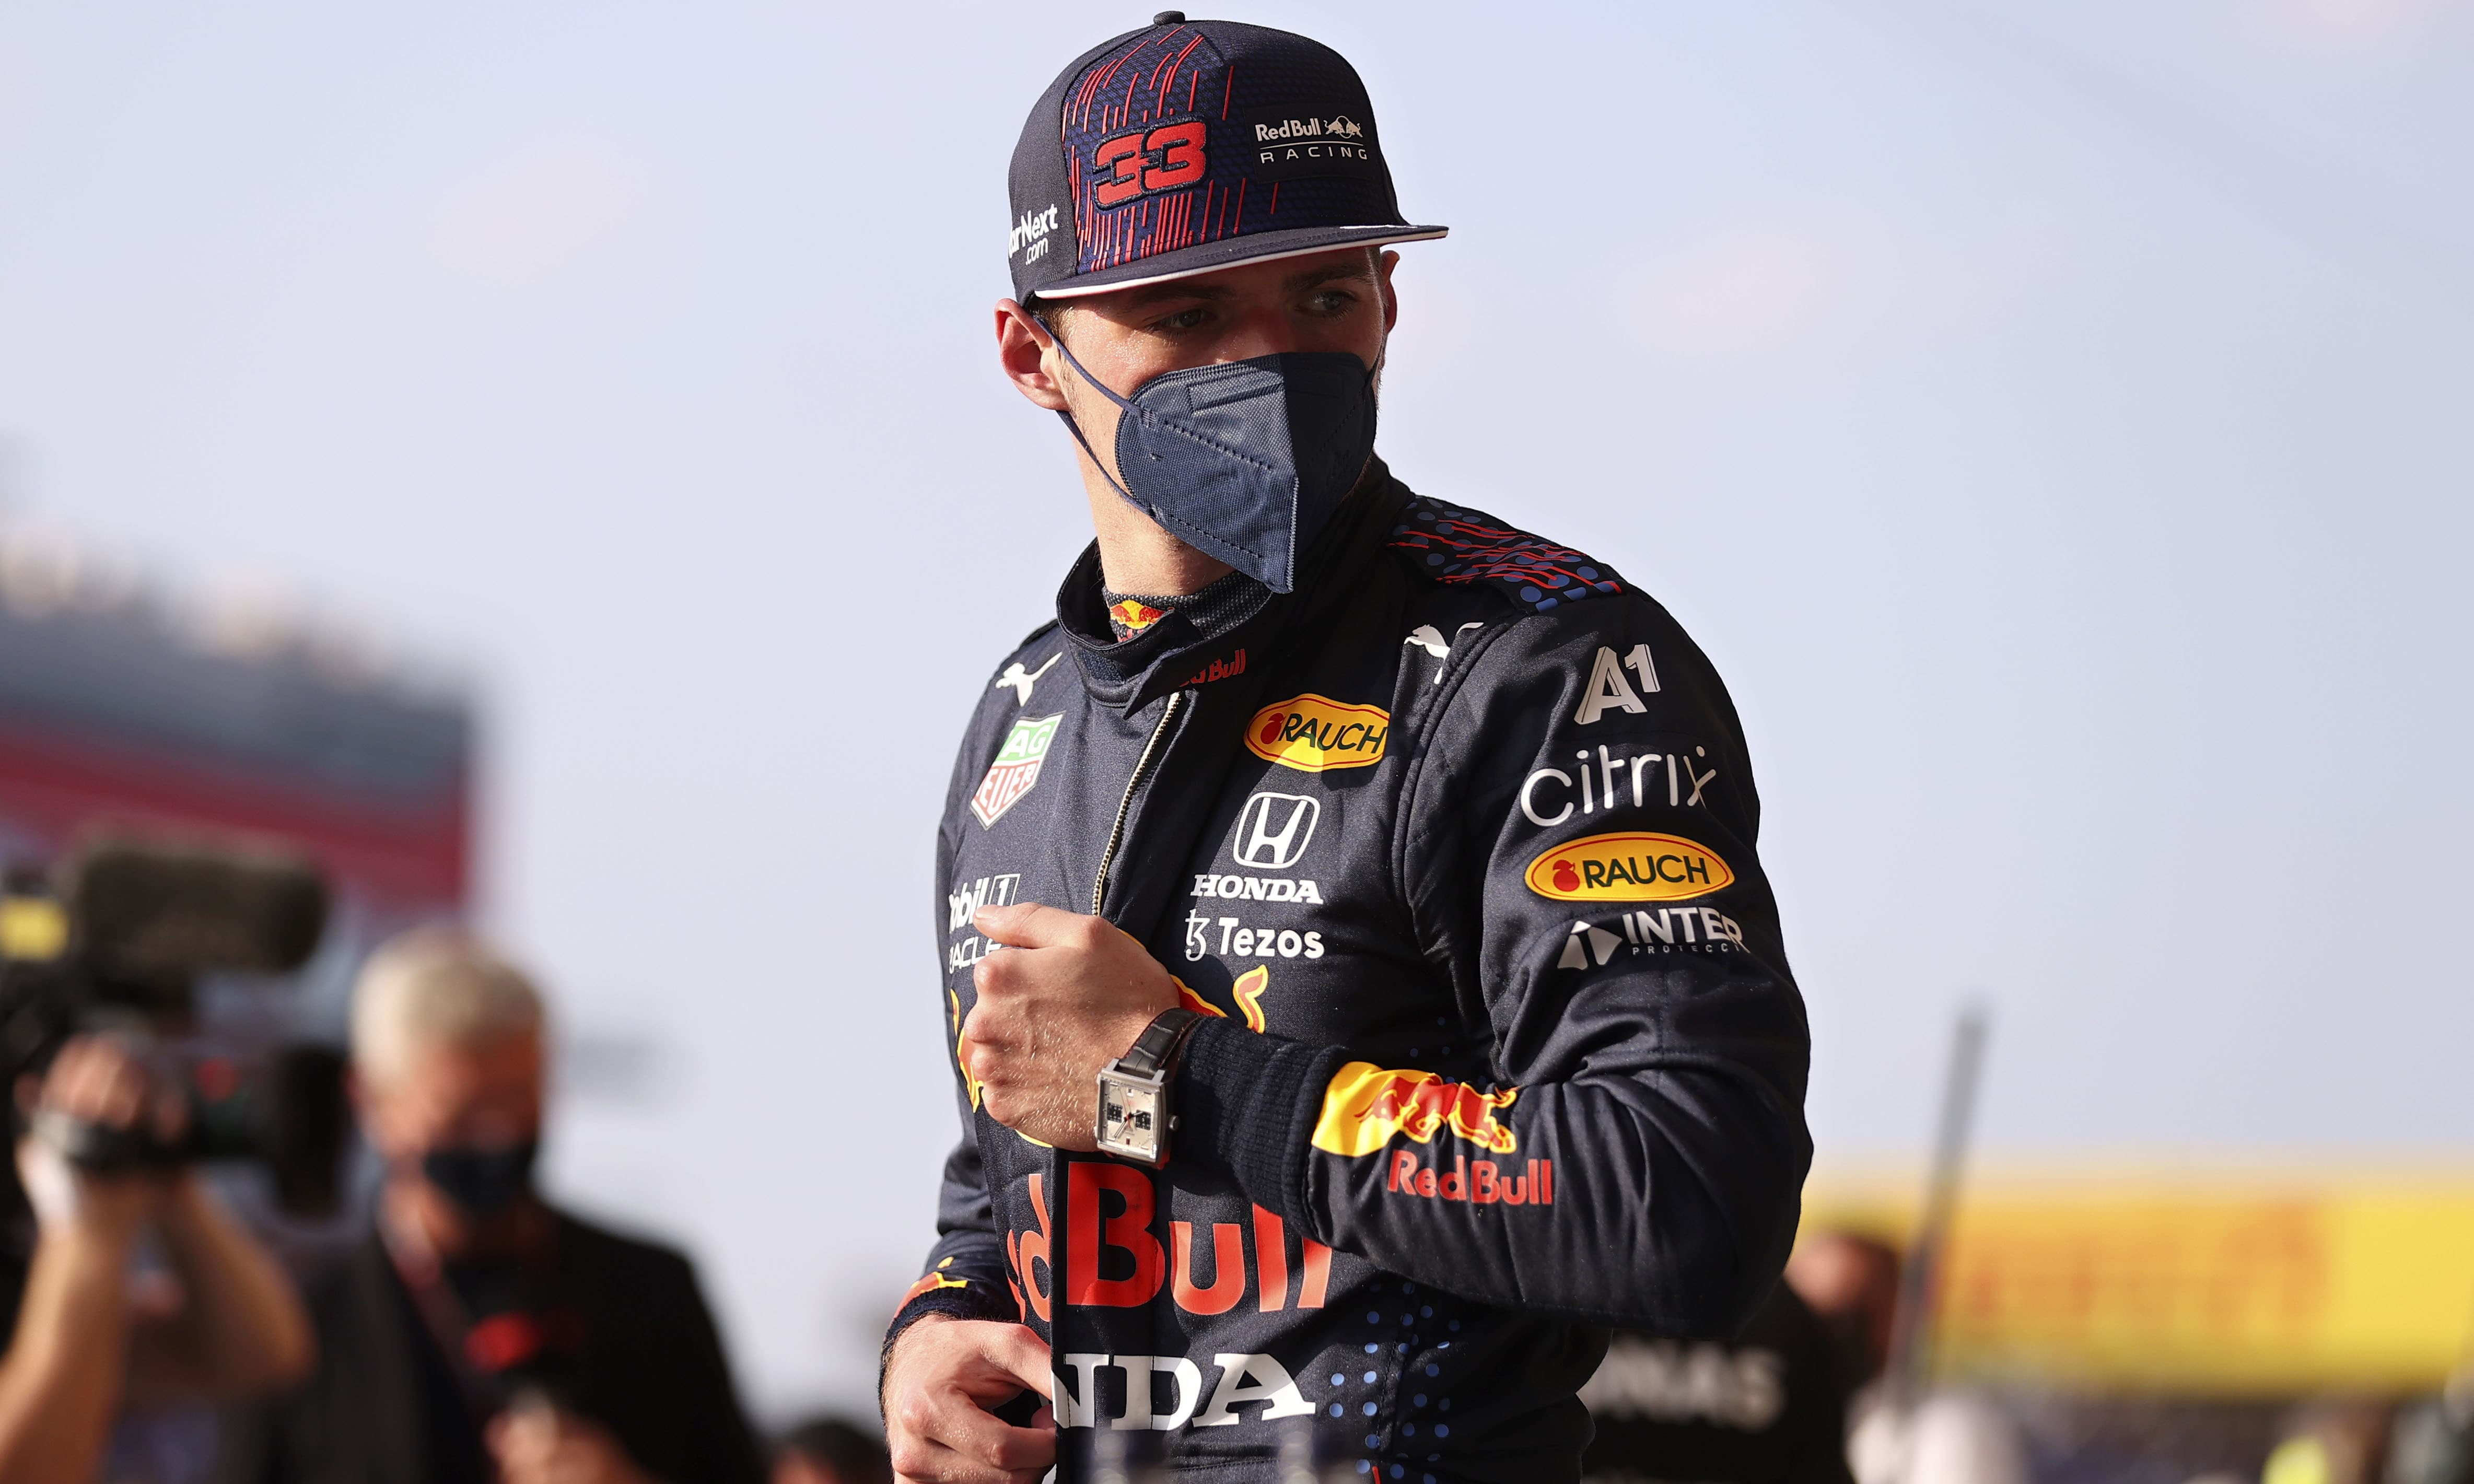 Red Bull driver Max Verstappen of the Netherlands stands in the pit lane at the end of the qualifying session ahead of Sunday's British Formula One Grand Prix, at the Silverstone circuit, in Silverstone, England on Friday. — AP